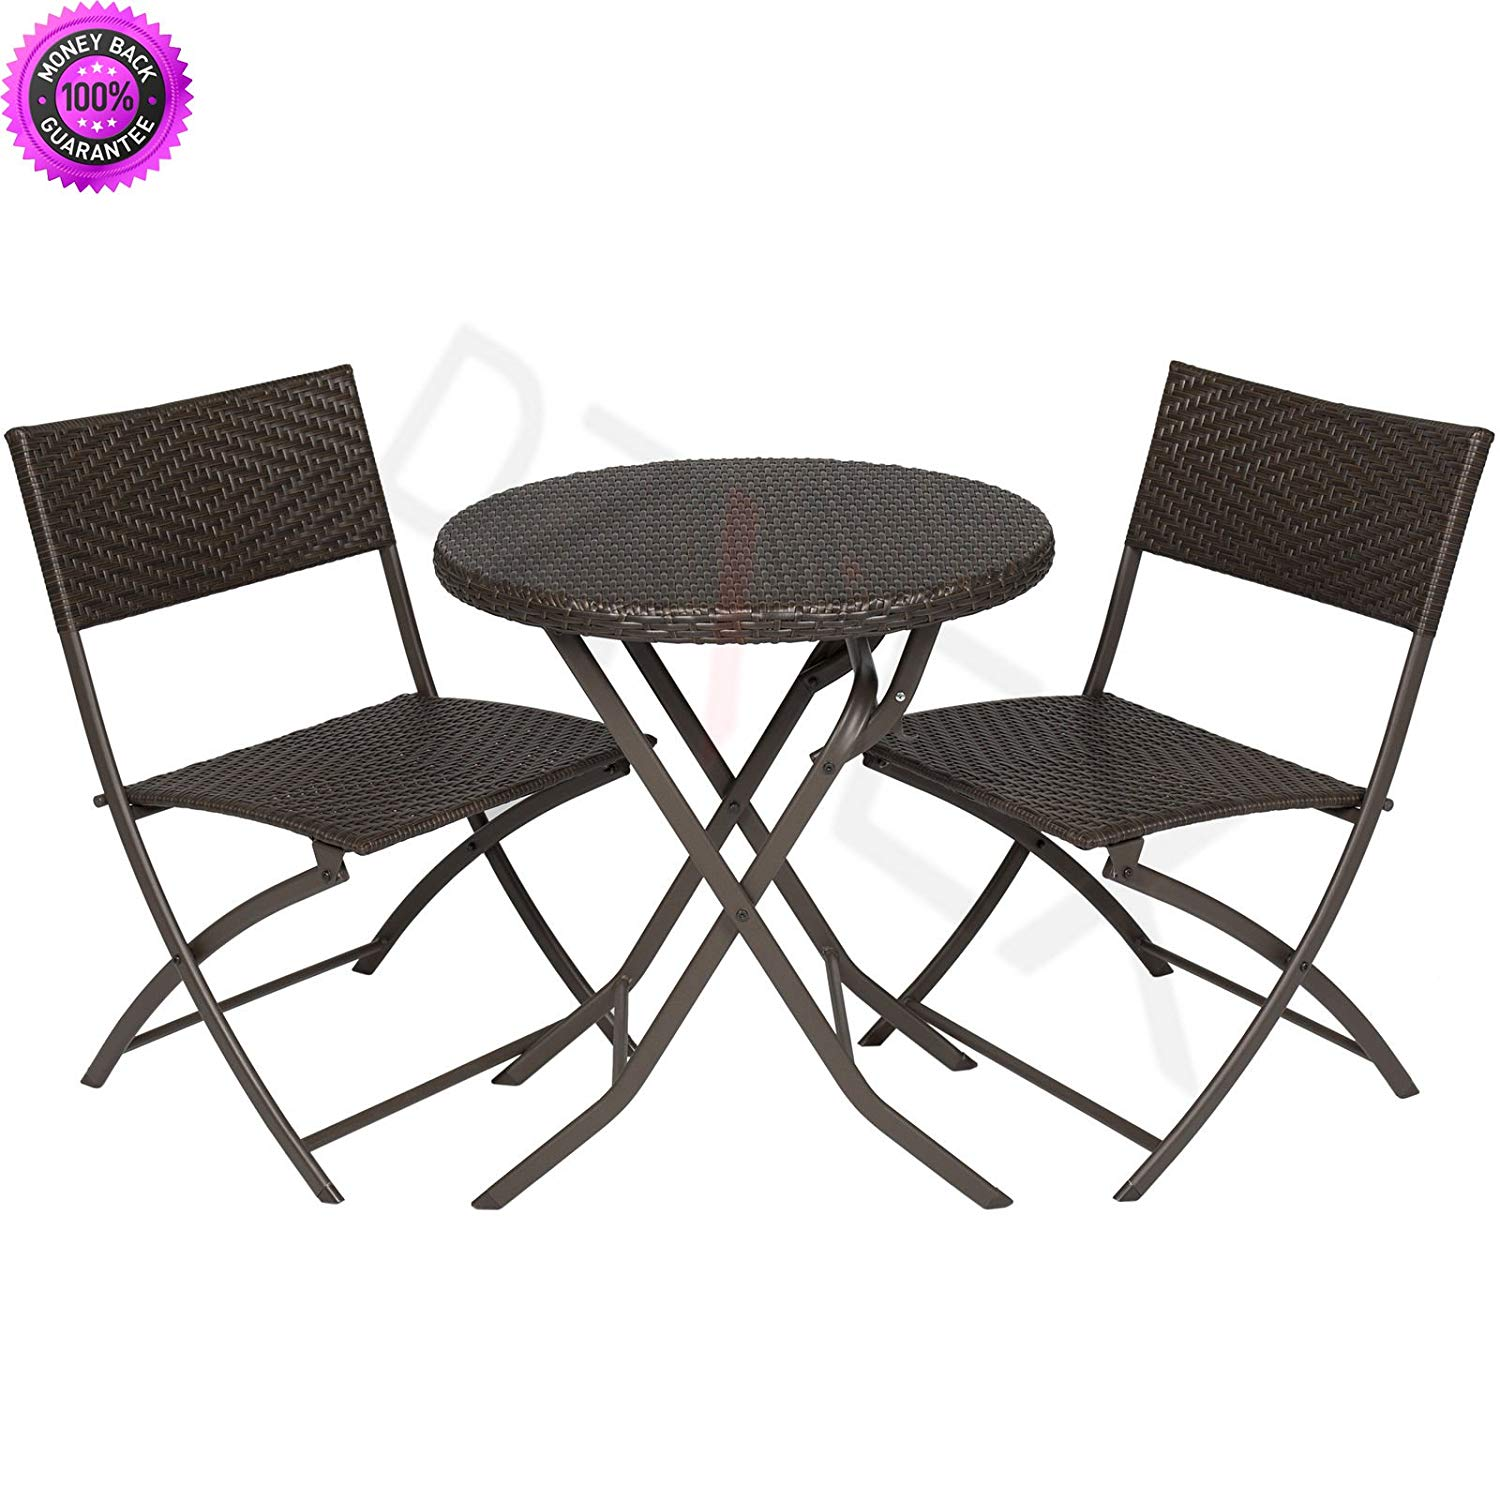 Cheap Lawn Furniture Lowes Find Lawn Furniture Lowes Deals On Line